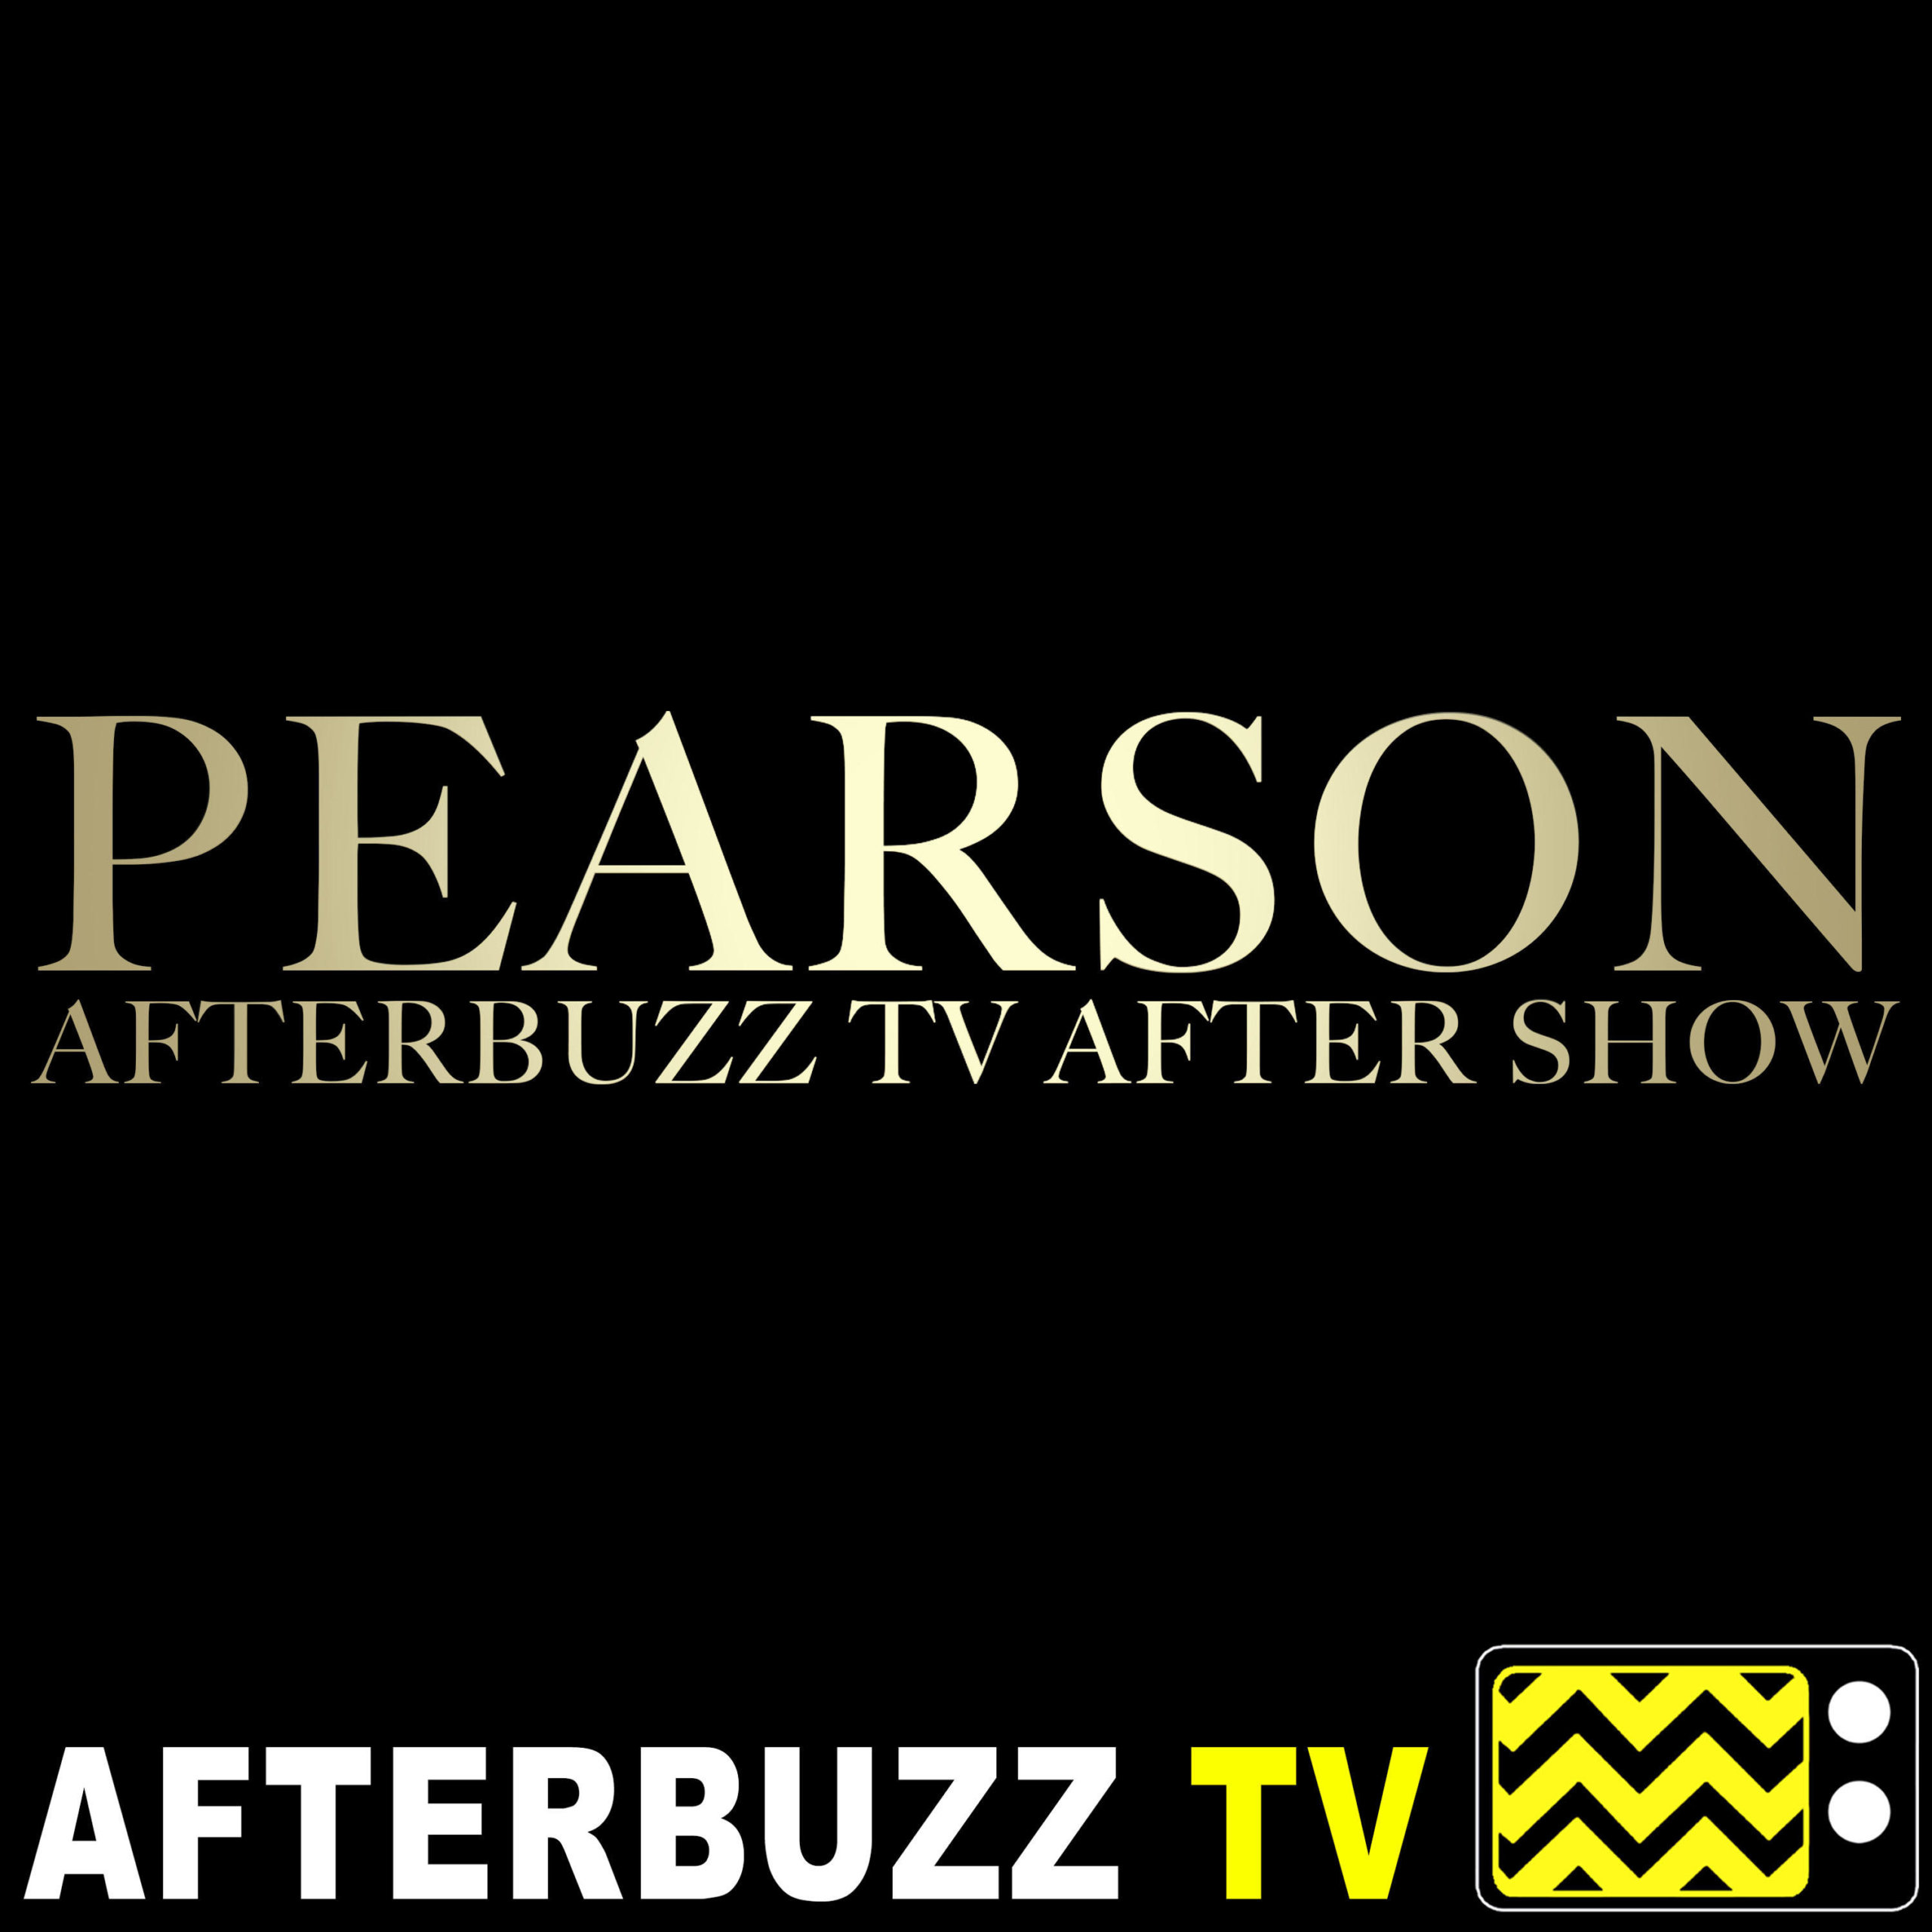 """The Fixer"" Season 1 Episode 10 'Pearson' Review"